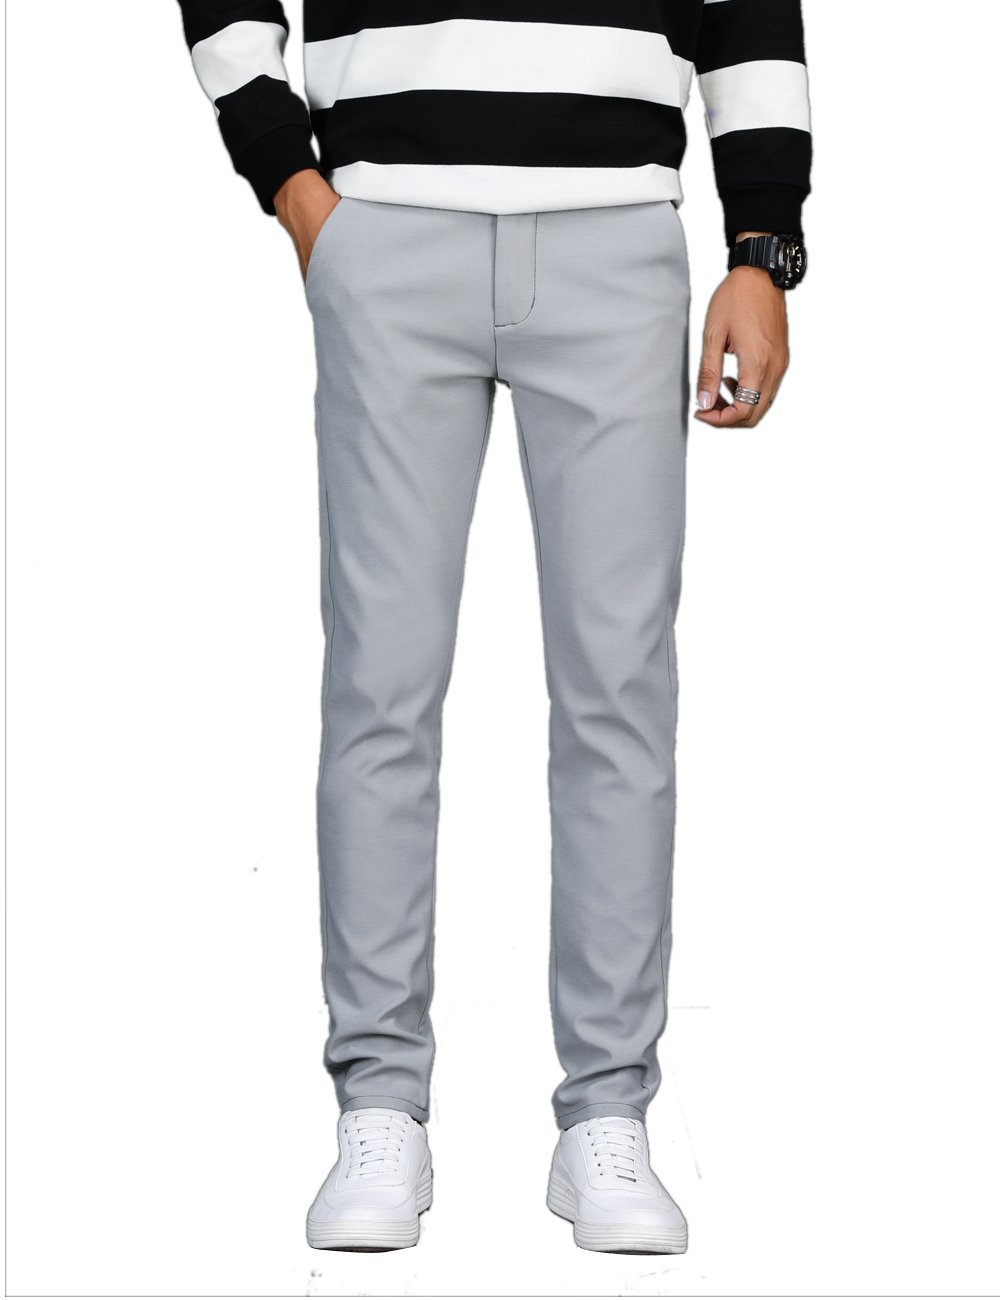 VEGORRS Men's Classic-Fit Wrinkle-Resistant Flat-Front Chino Pant